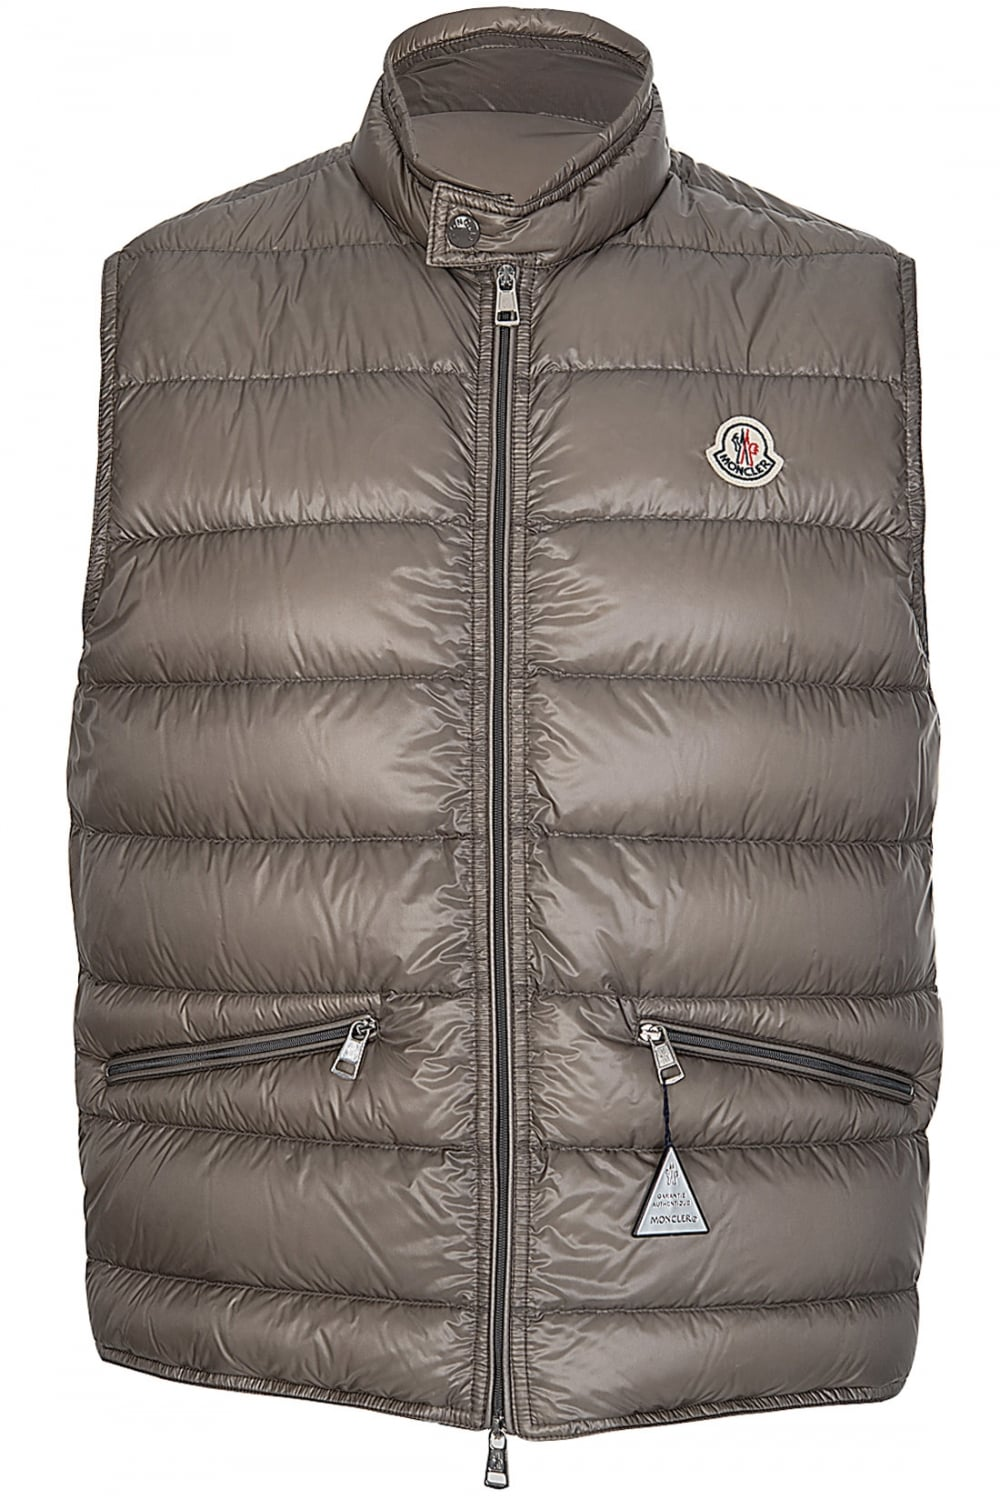 afd36f7db07b MONCLER GUI - Clothing from Circle Fashion UK